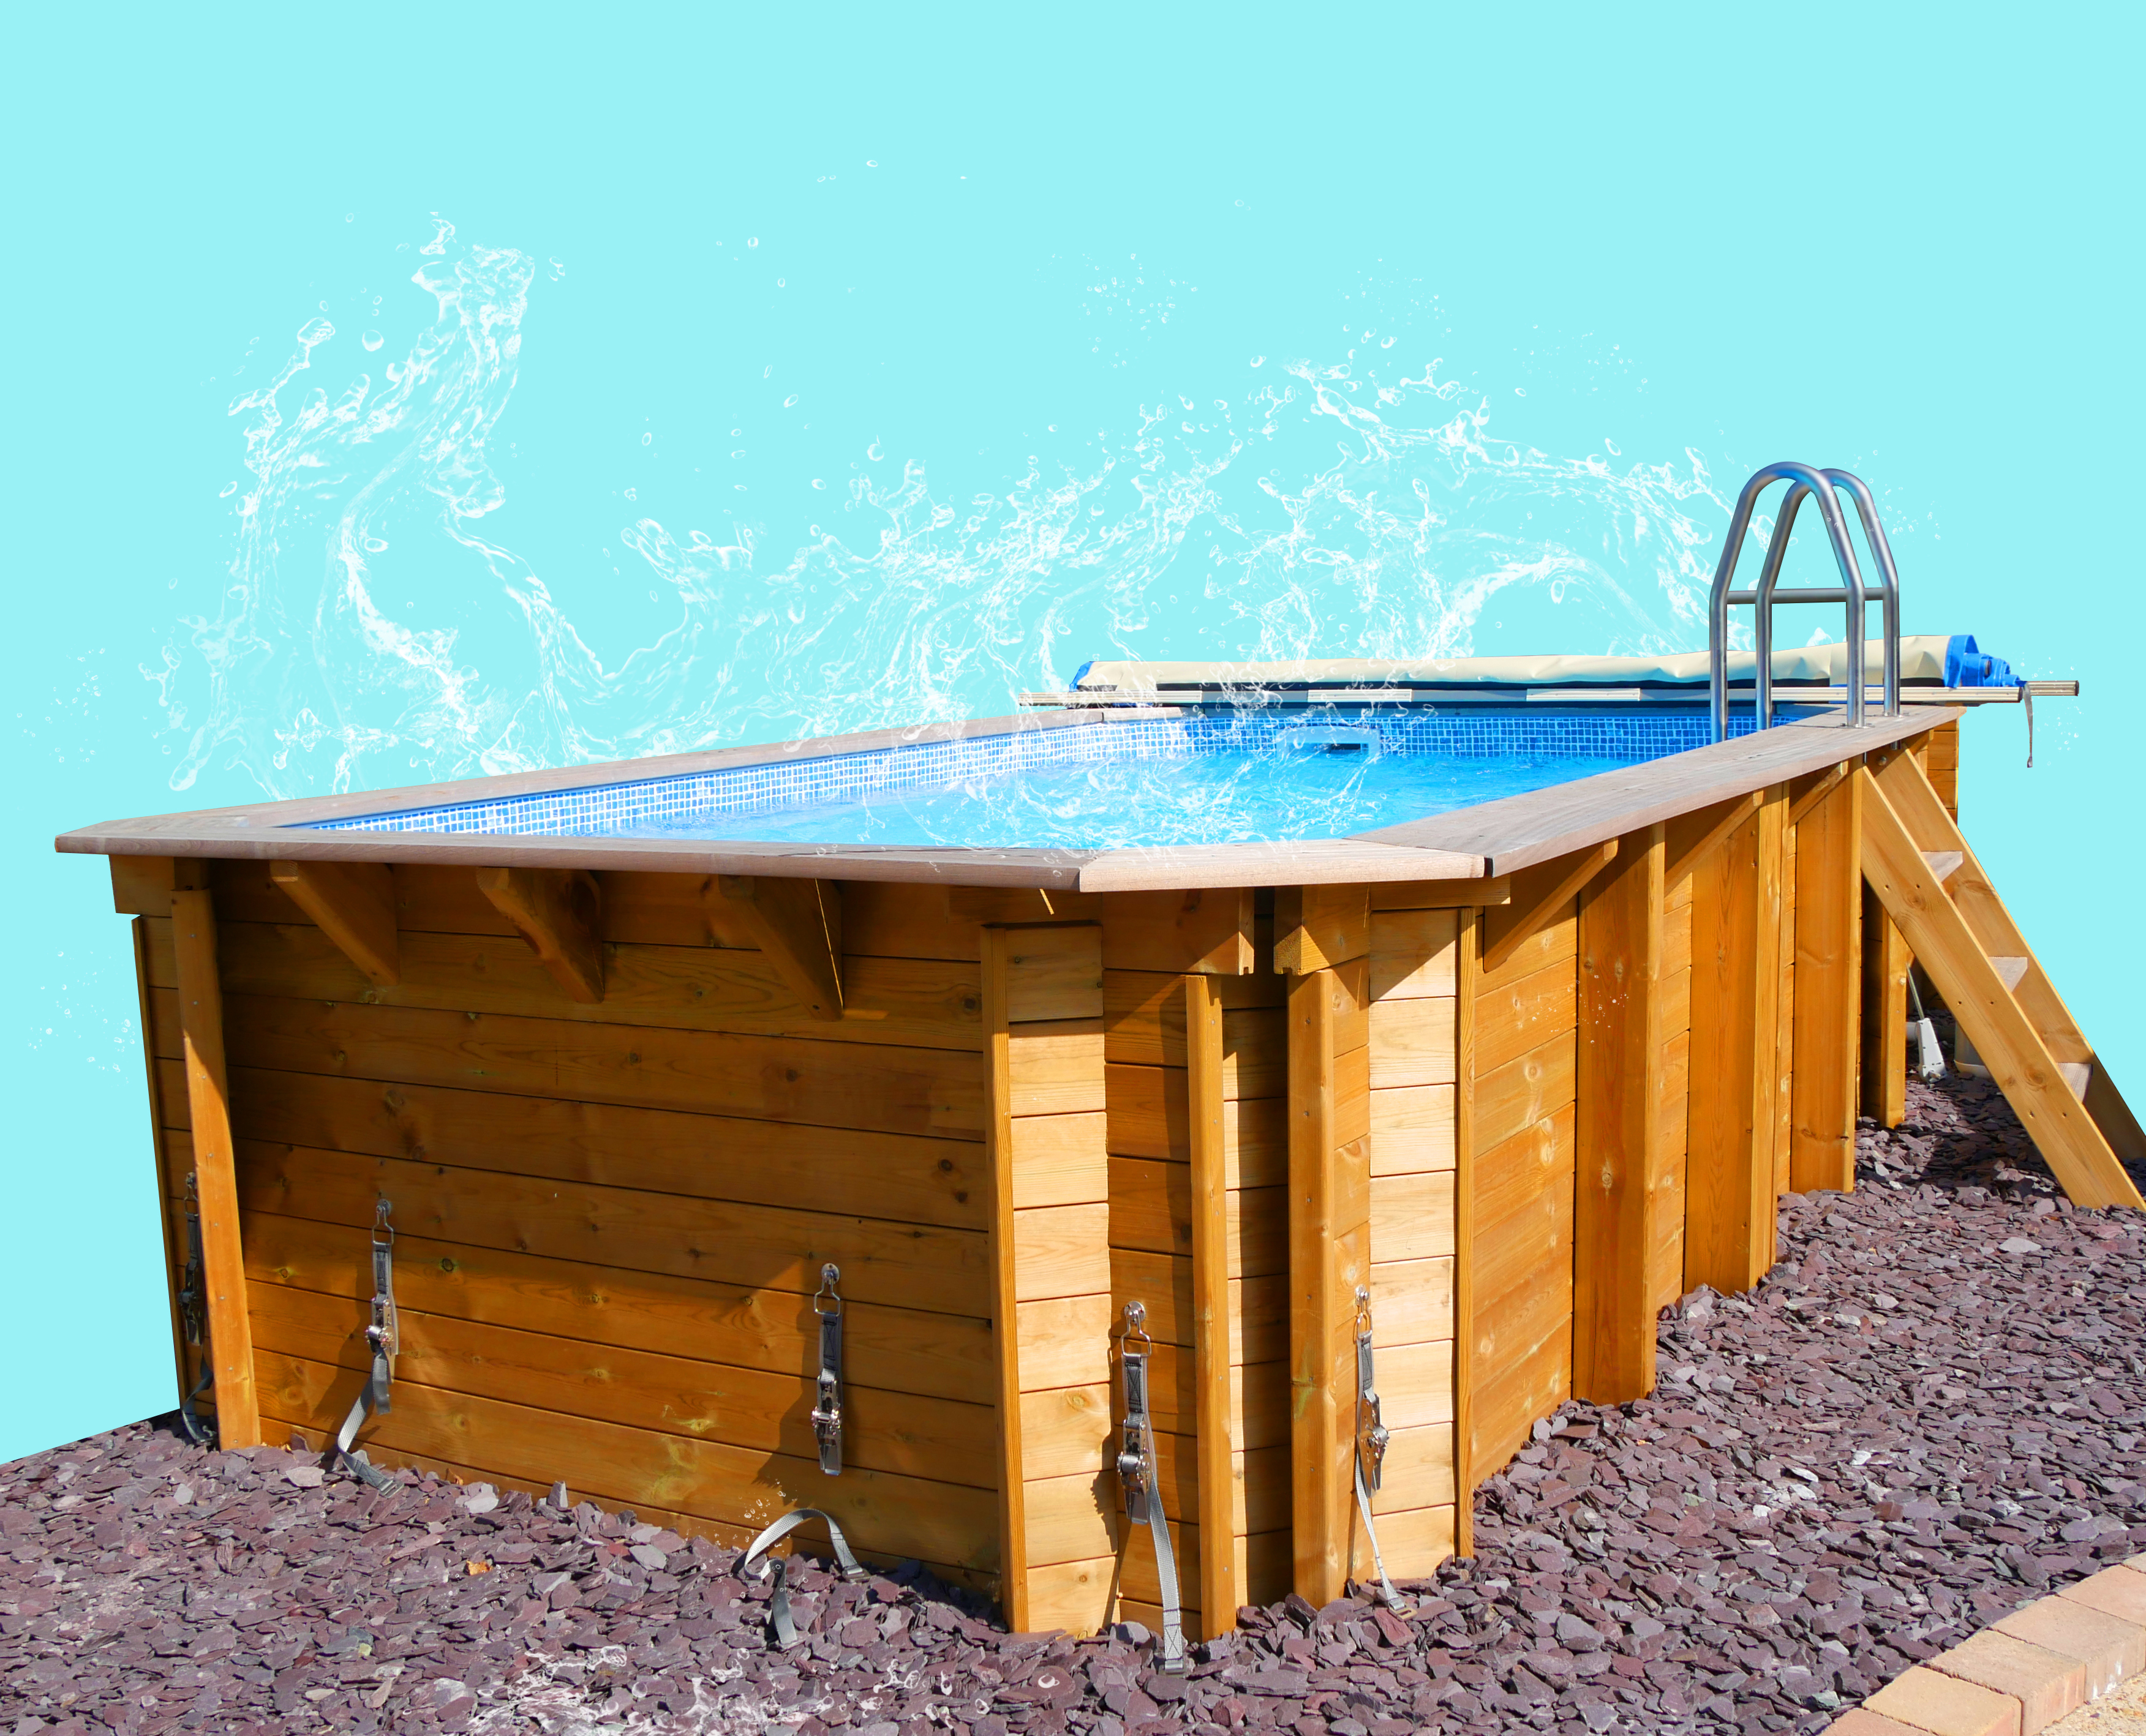 Plastica_Exercise Wooden Pool_water effect